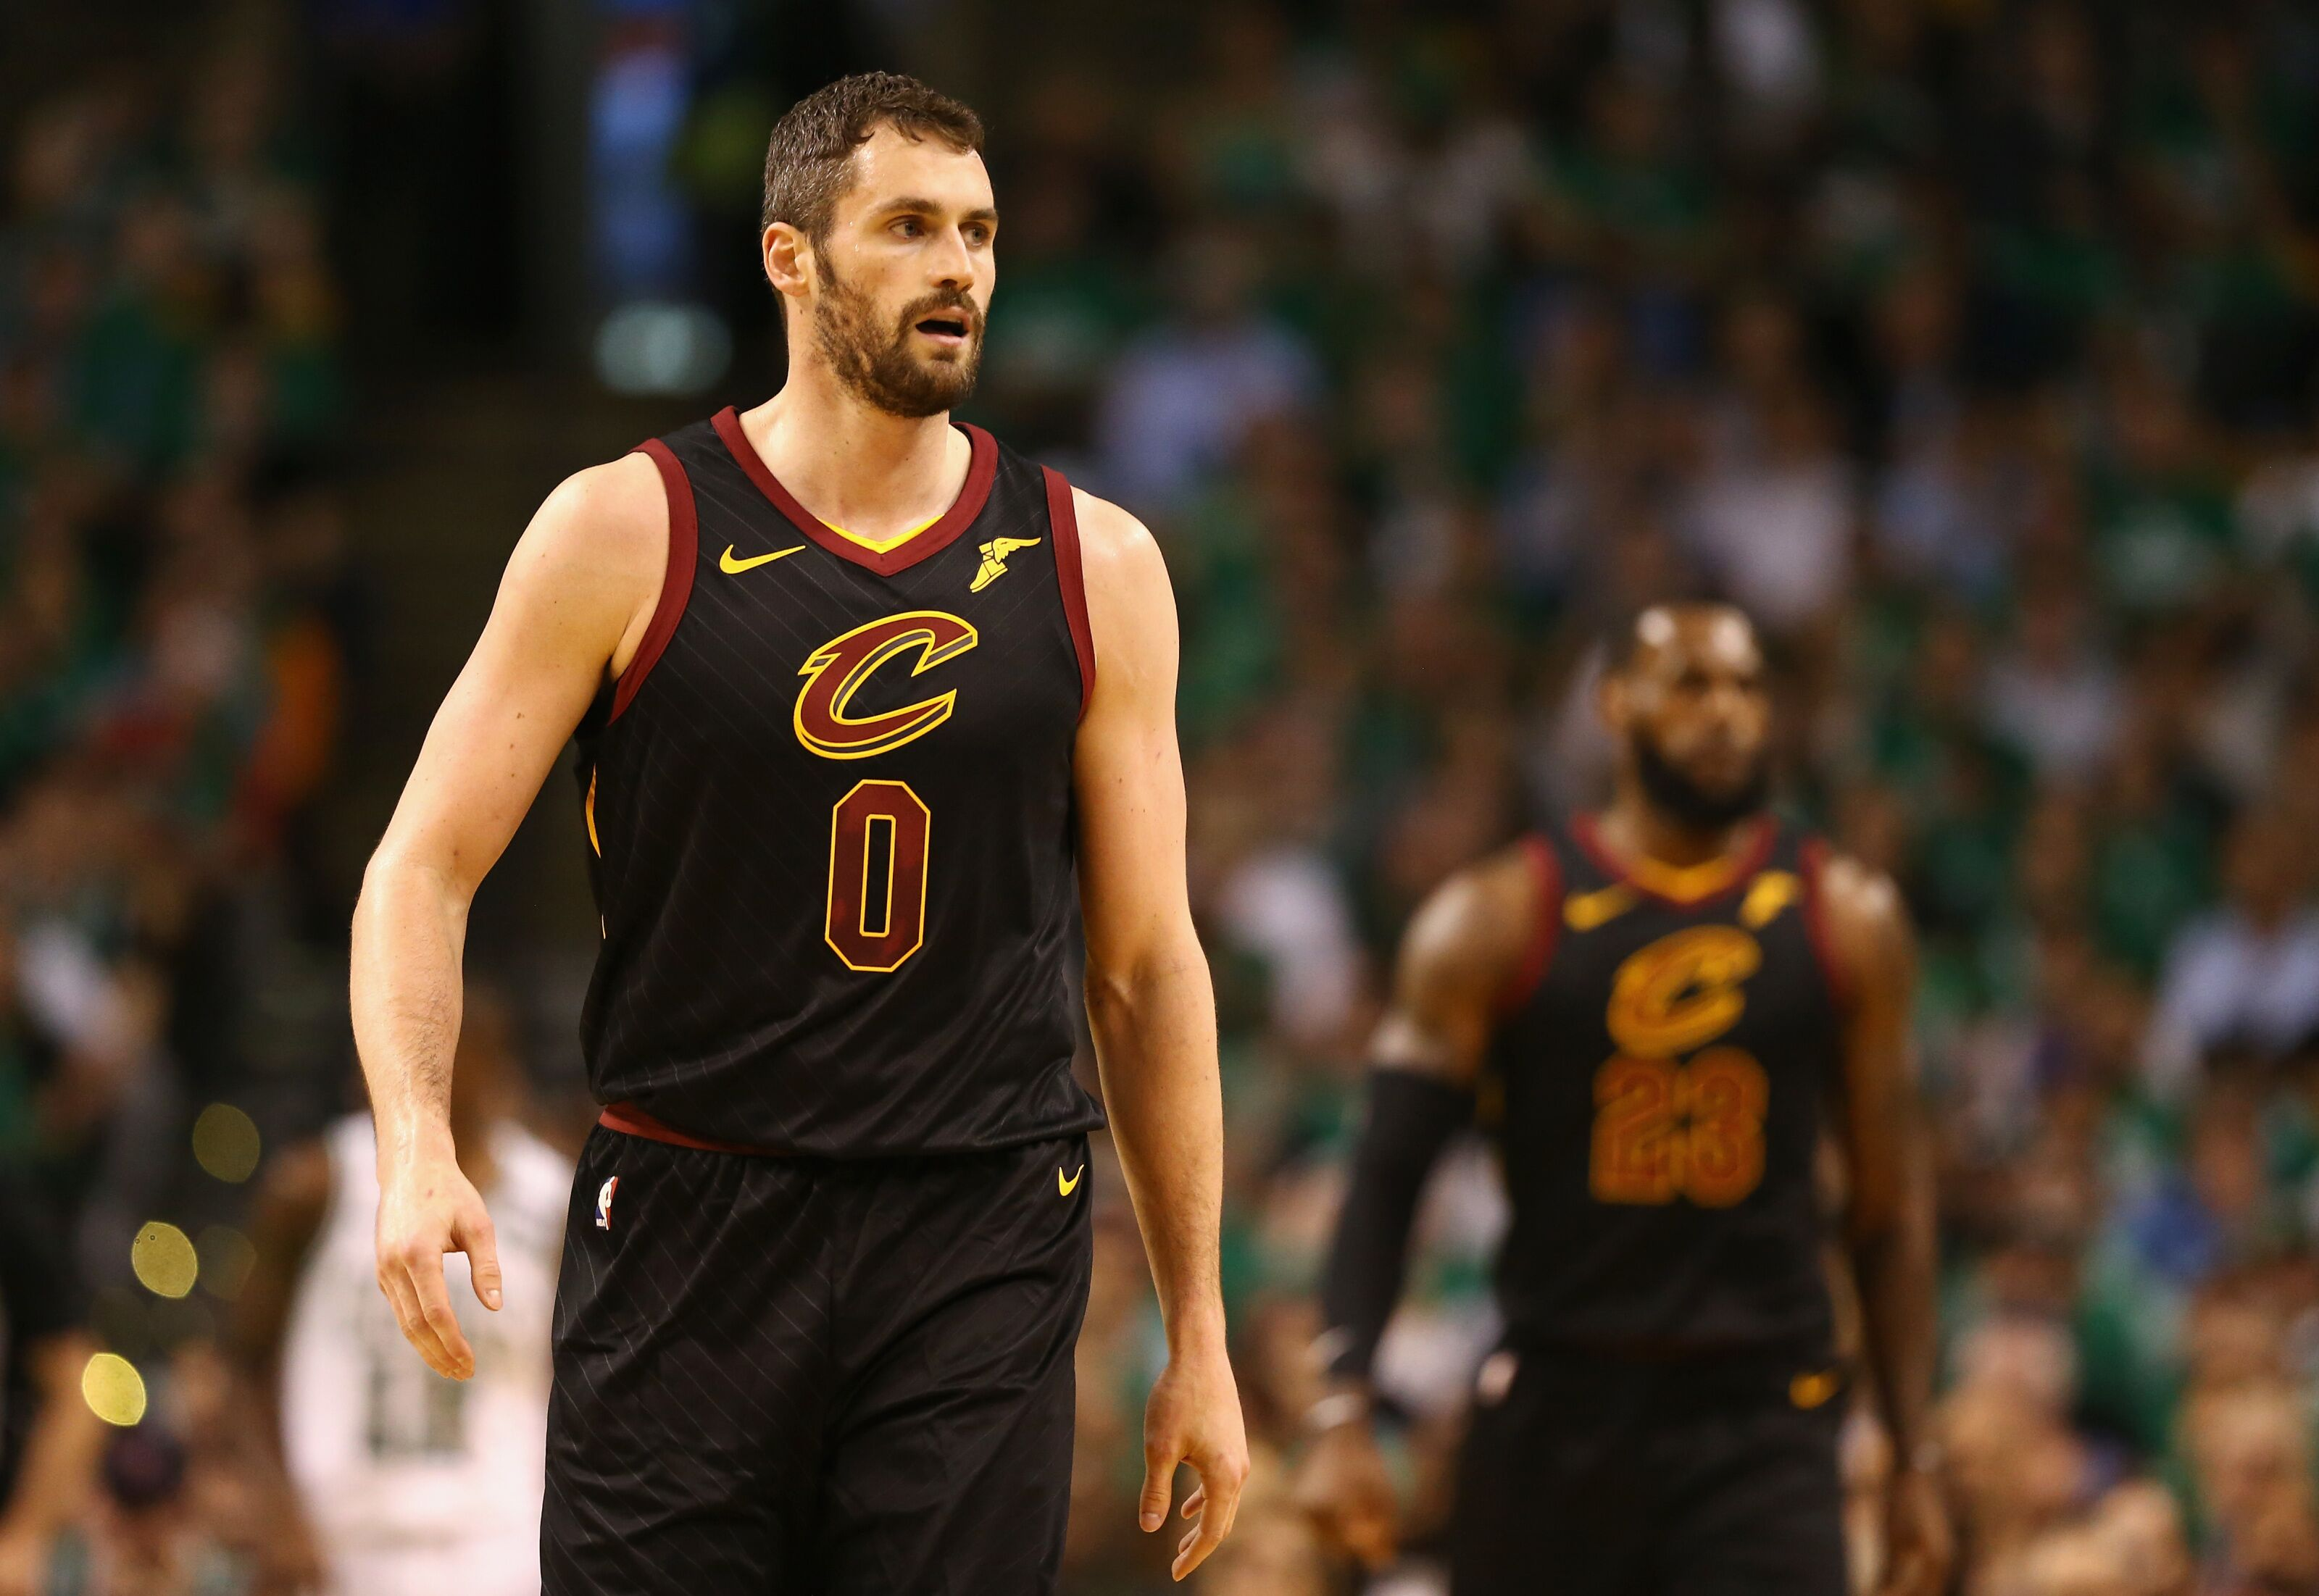 Boston Ma May  Kevin Love  Of The Cleveland Cavaliers Looks